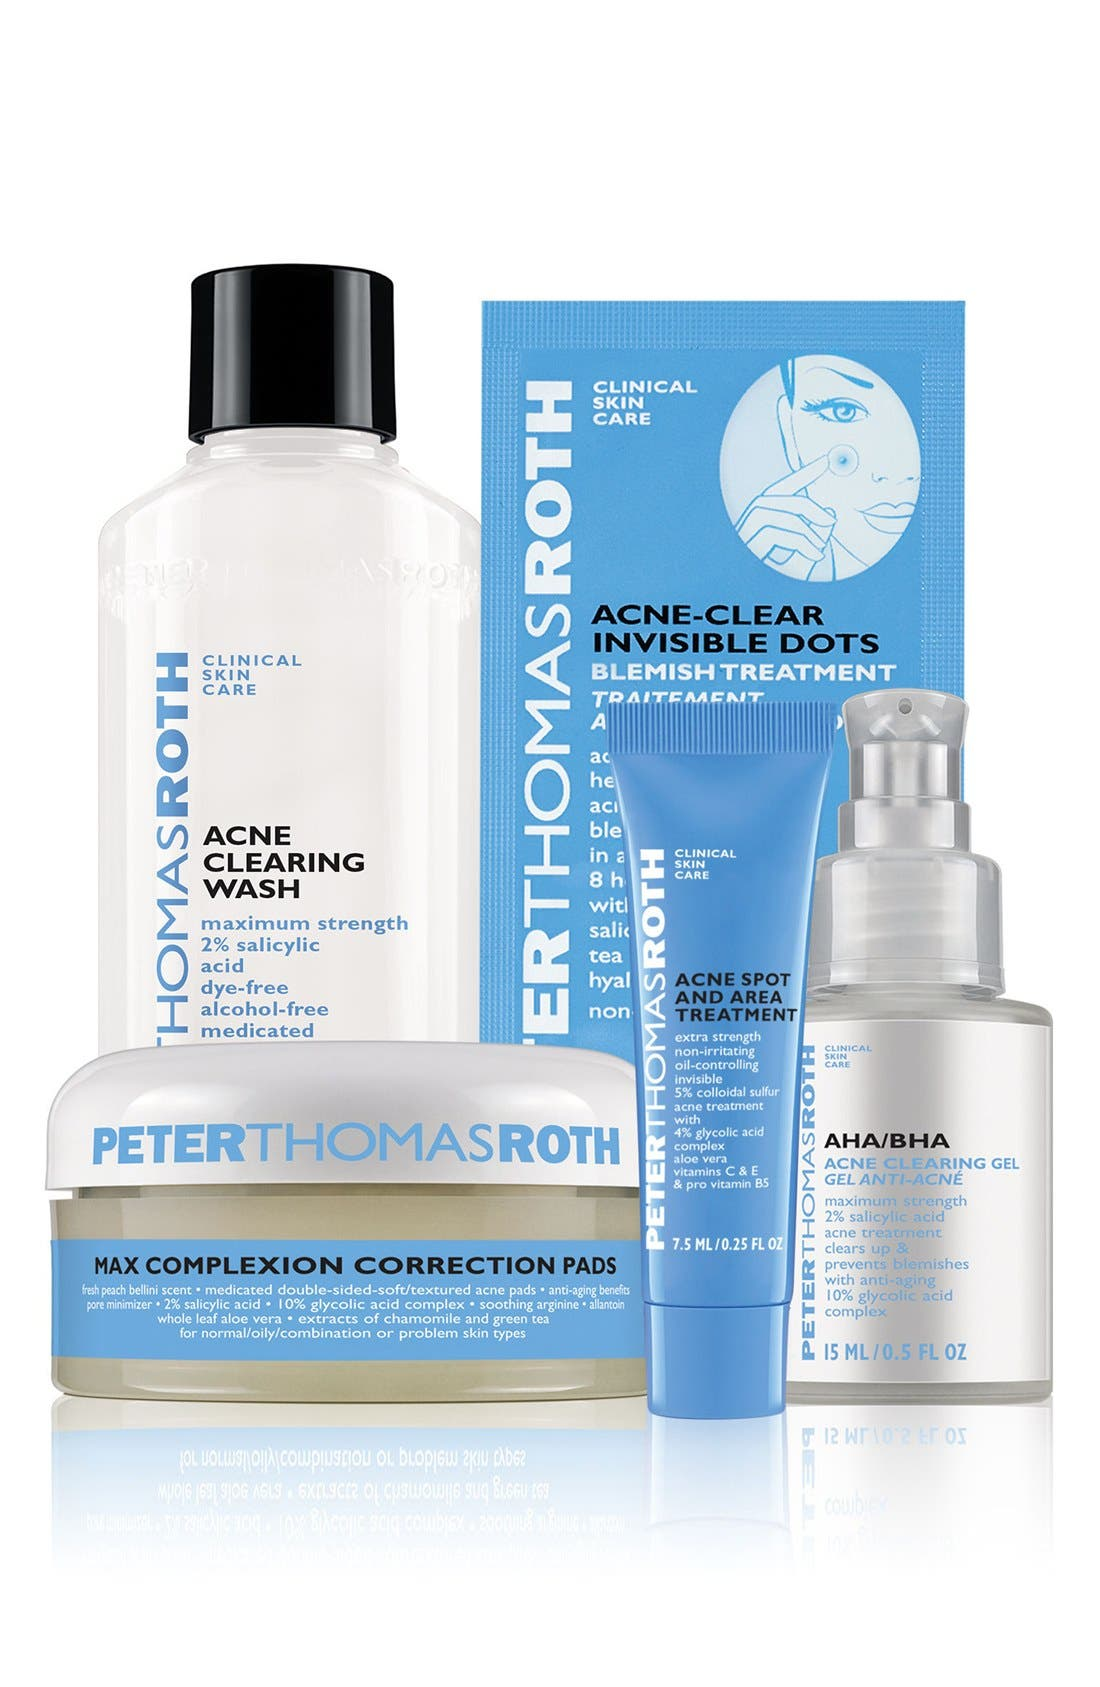 Peter Thomas Roth Acne System Kit